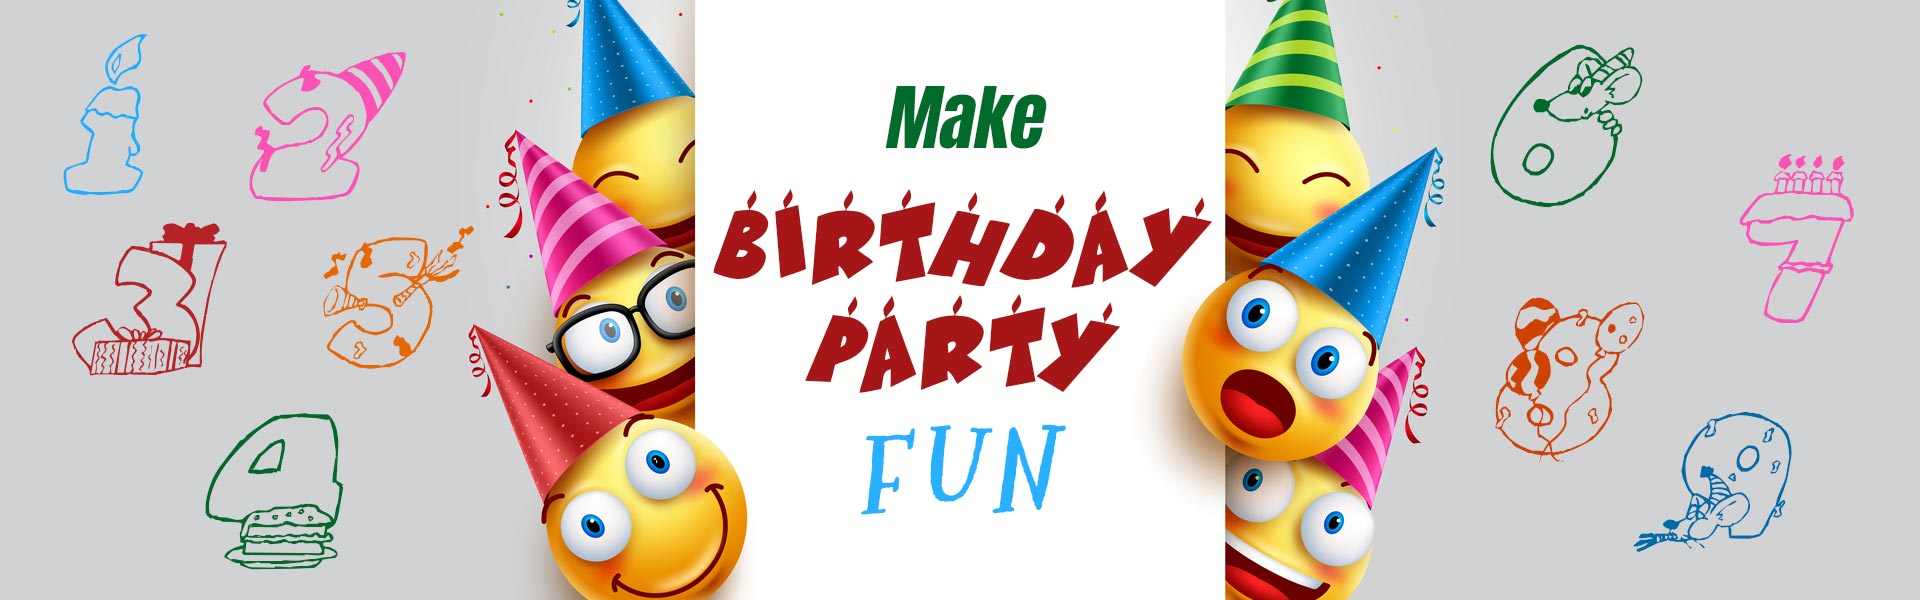 How to make birthday party a fun filled event